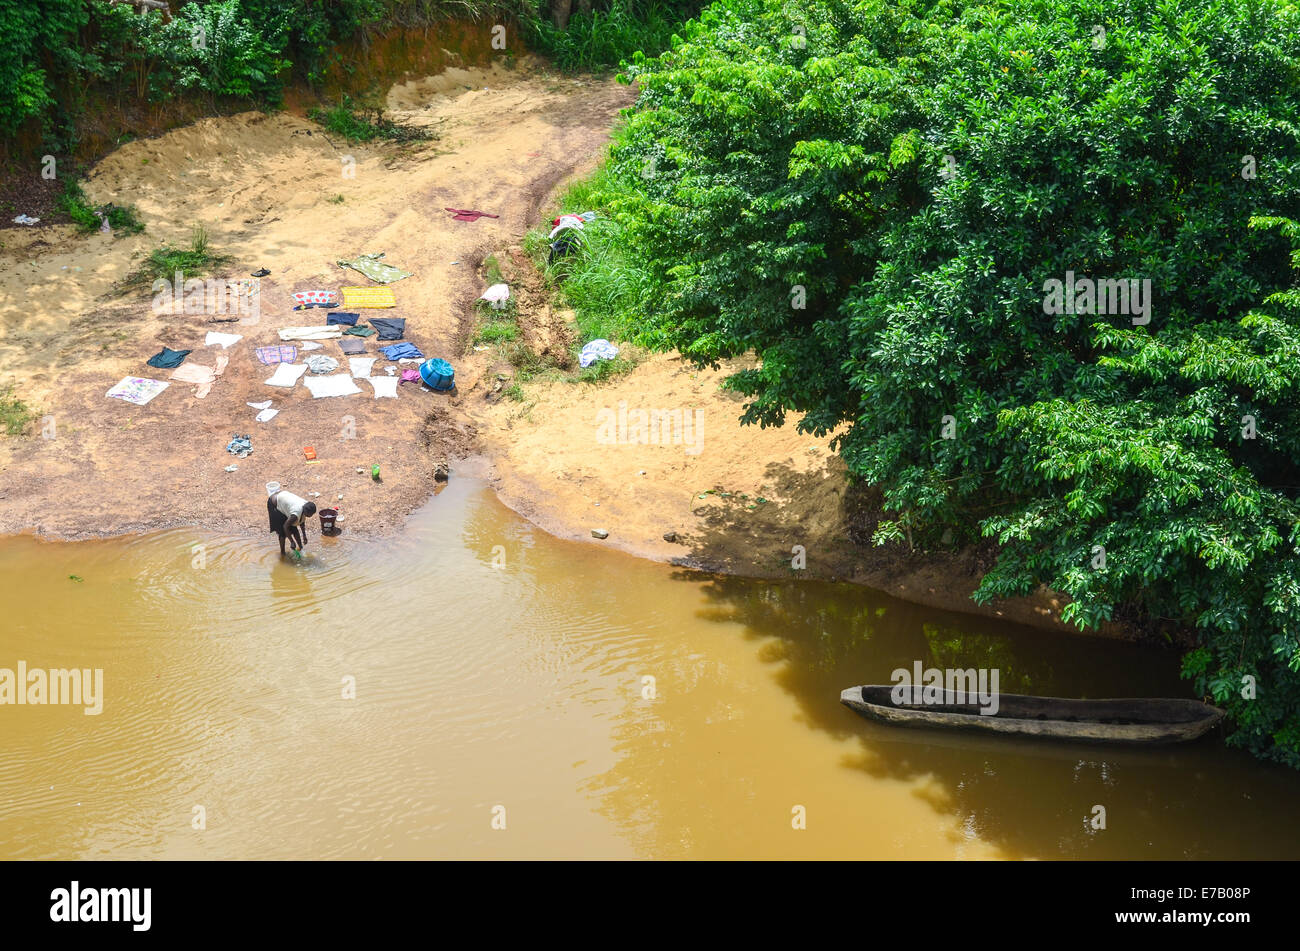 Woman doing laundry in a brown water river in Sierra Leone - Stock Image